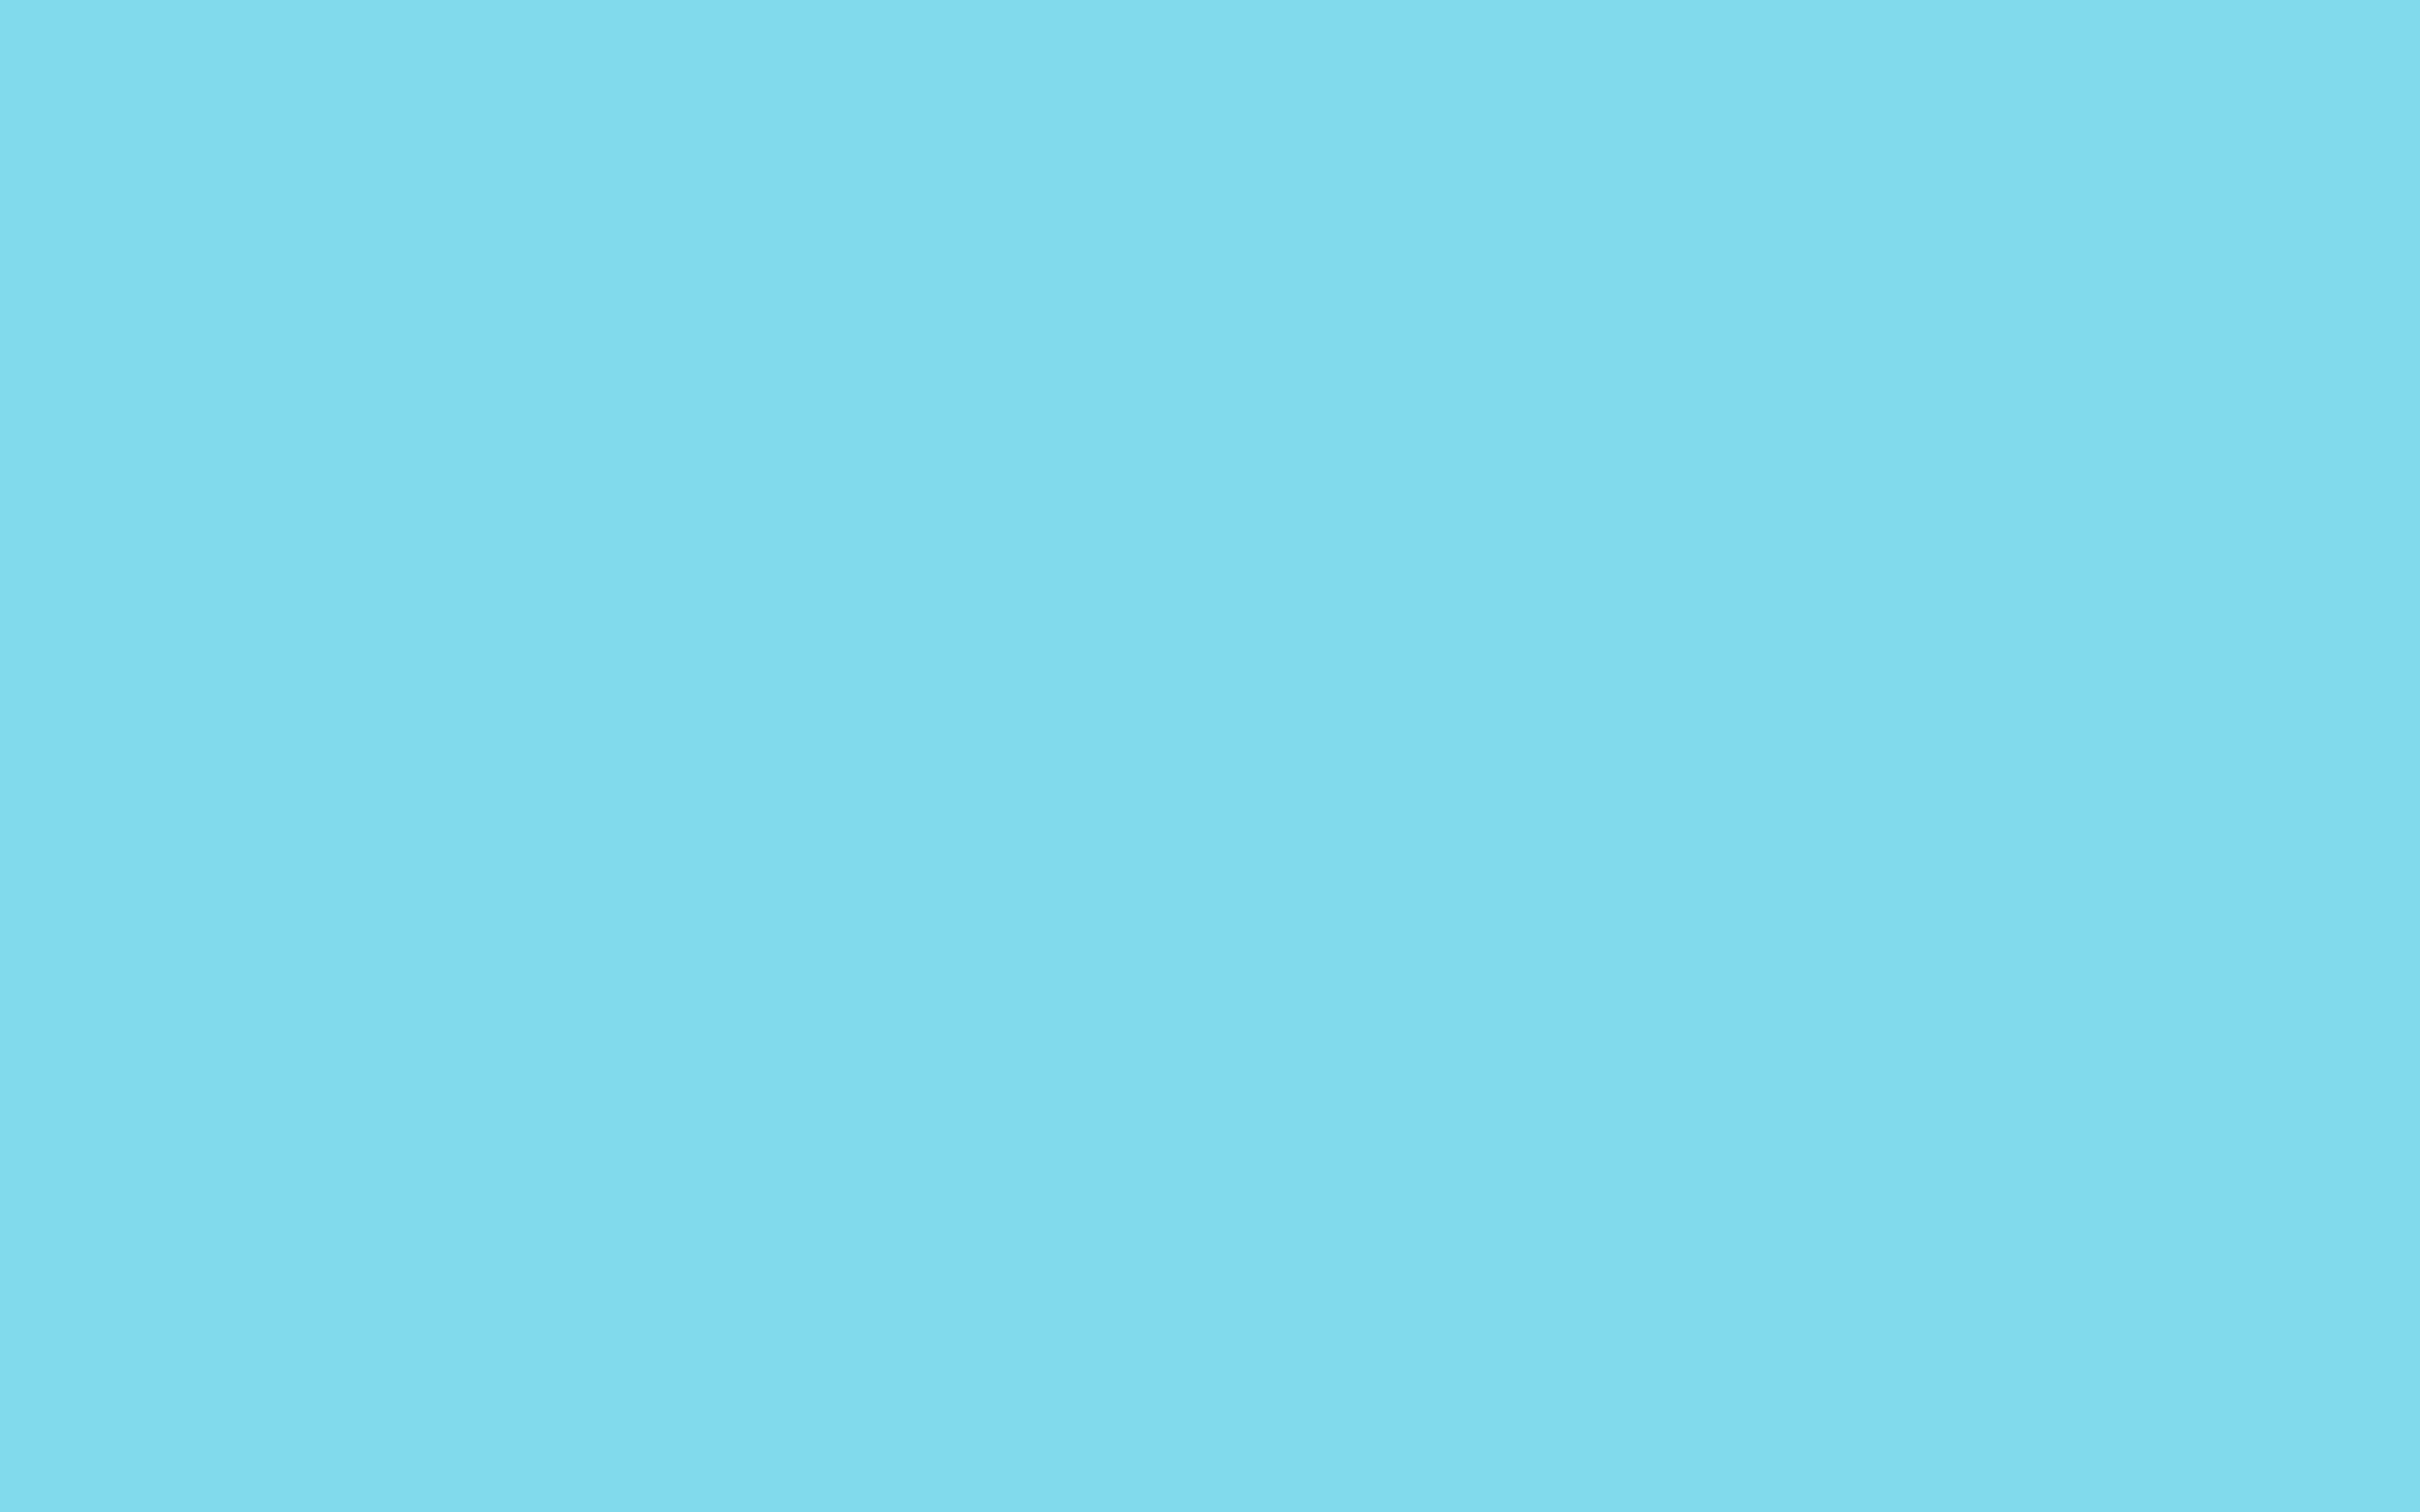 2880x1800 Medium Sky Blue Solid Color Background